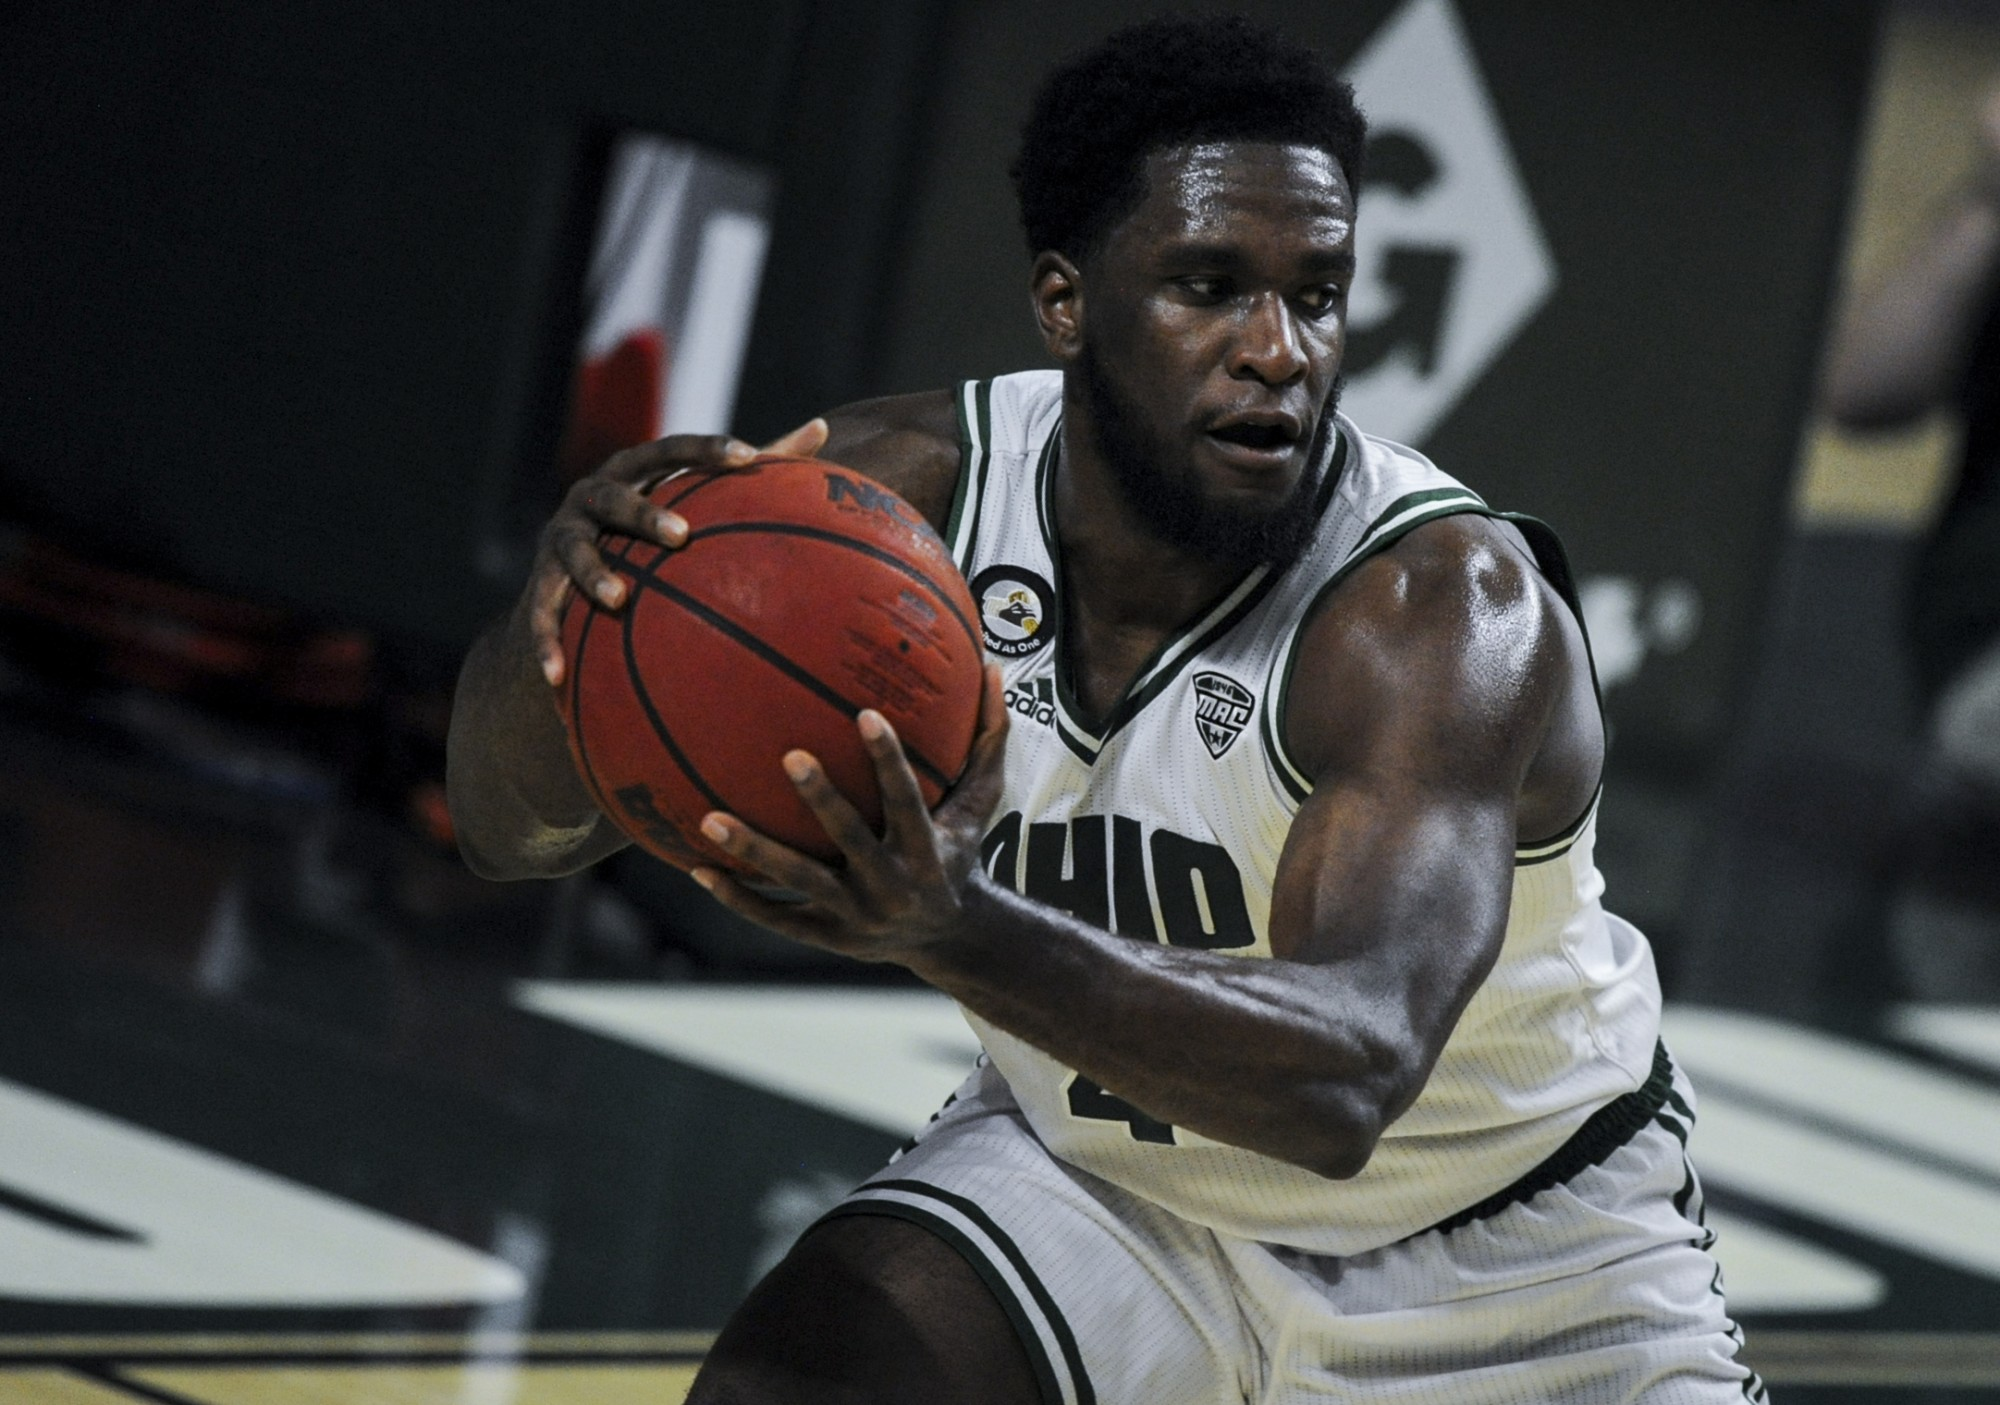 Ohio University's Dwight Wilson III grabs the rebound during the home game against Northern Illinois University on January, 5 2021 in Athens, Ohio.